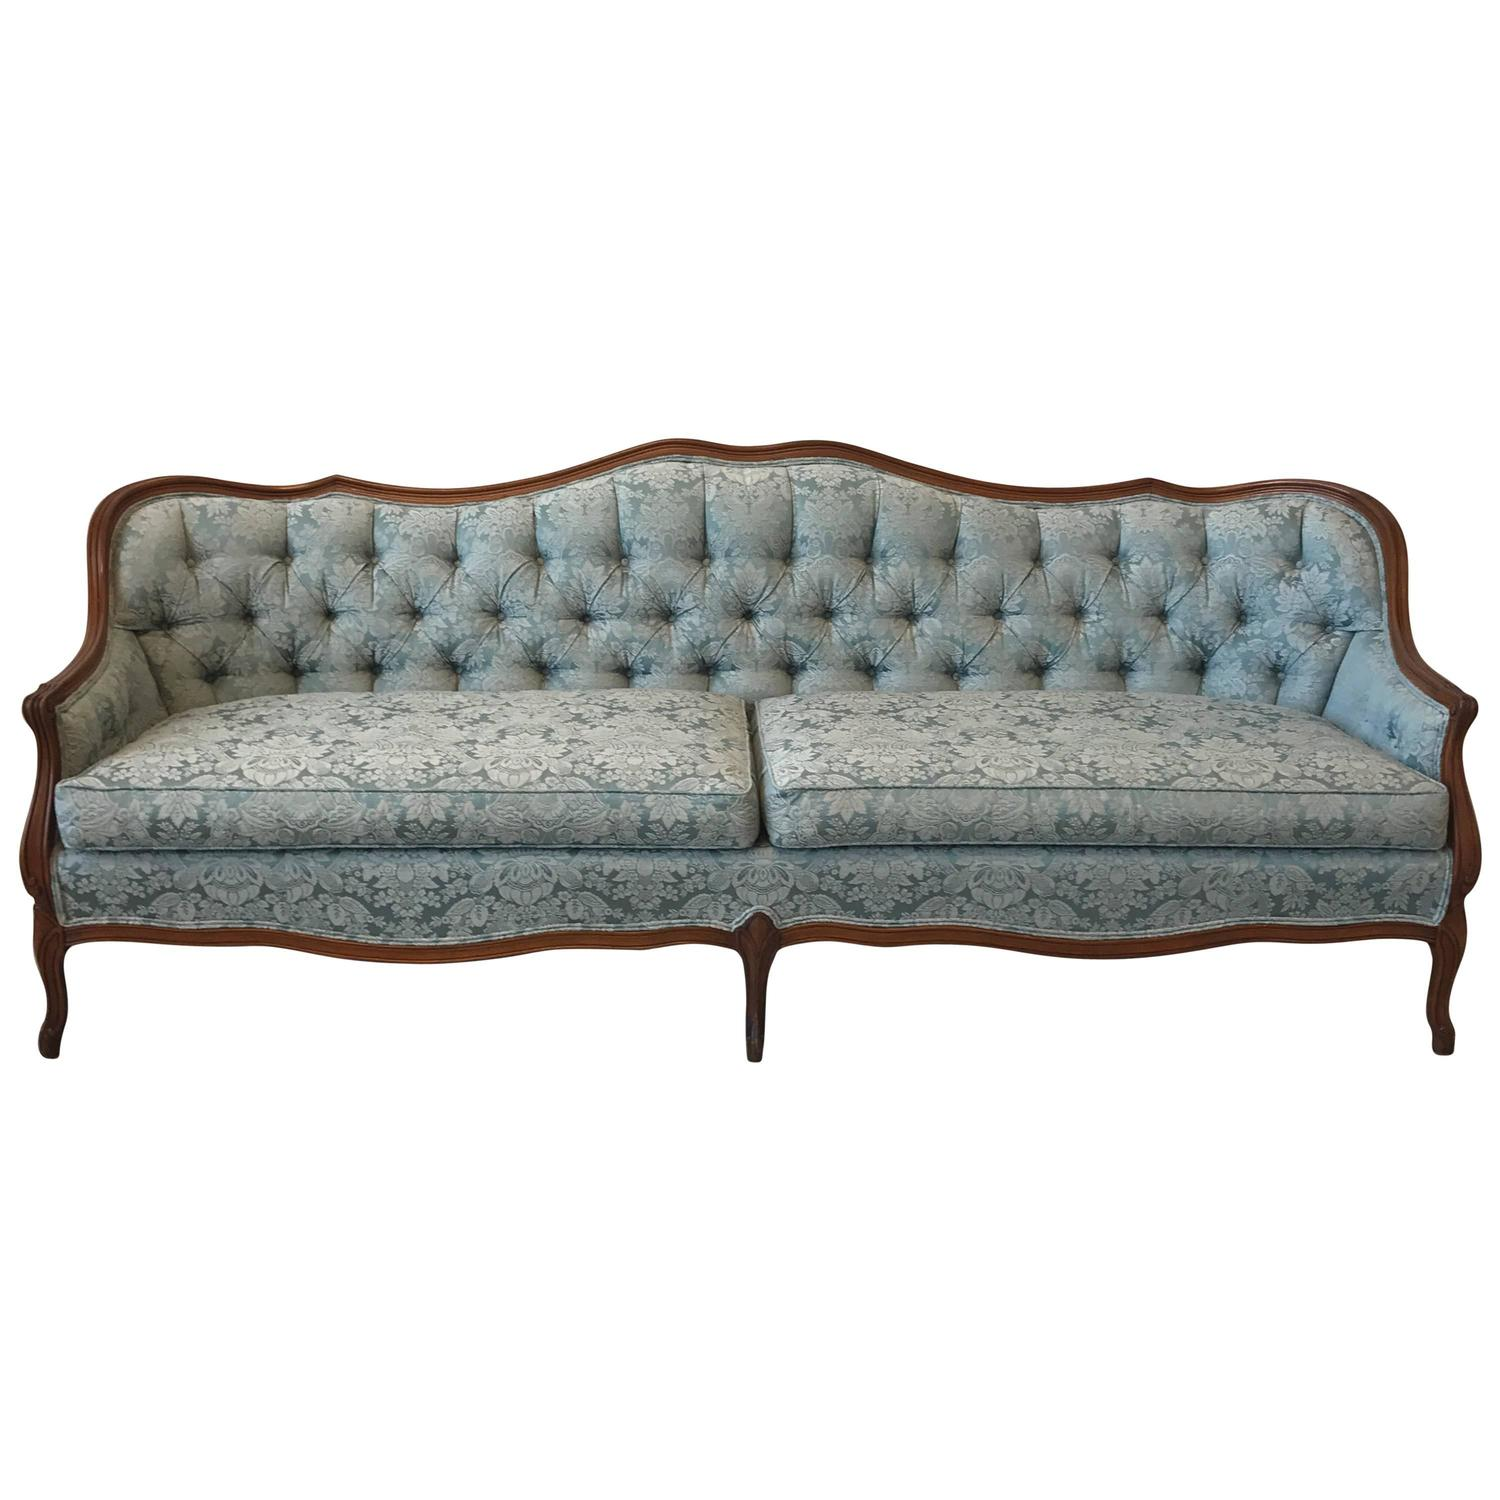 Tufted Sofas 382 For Sale on 1stdibs